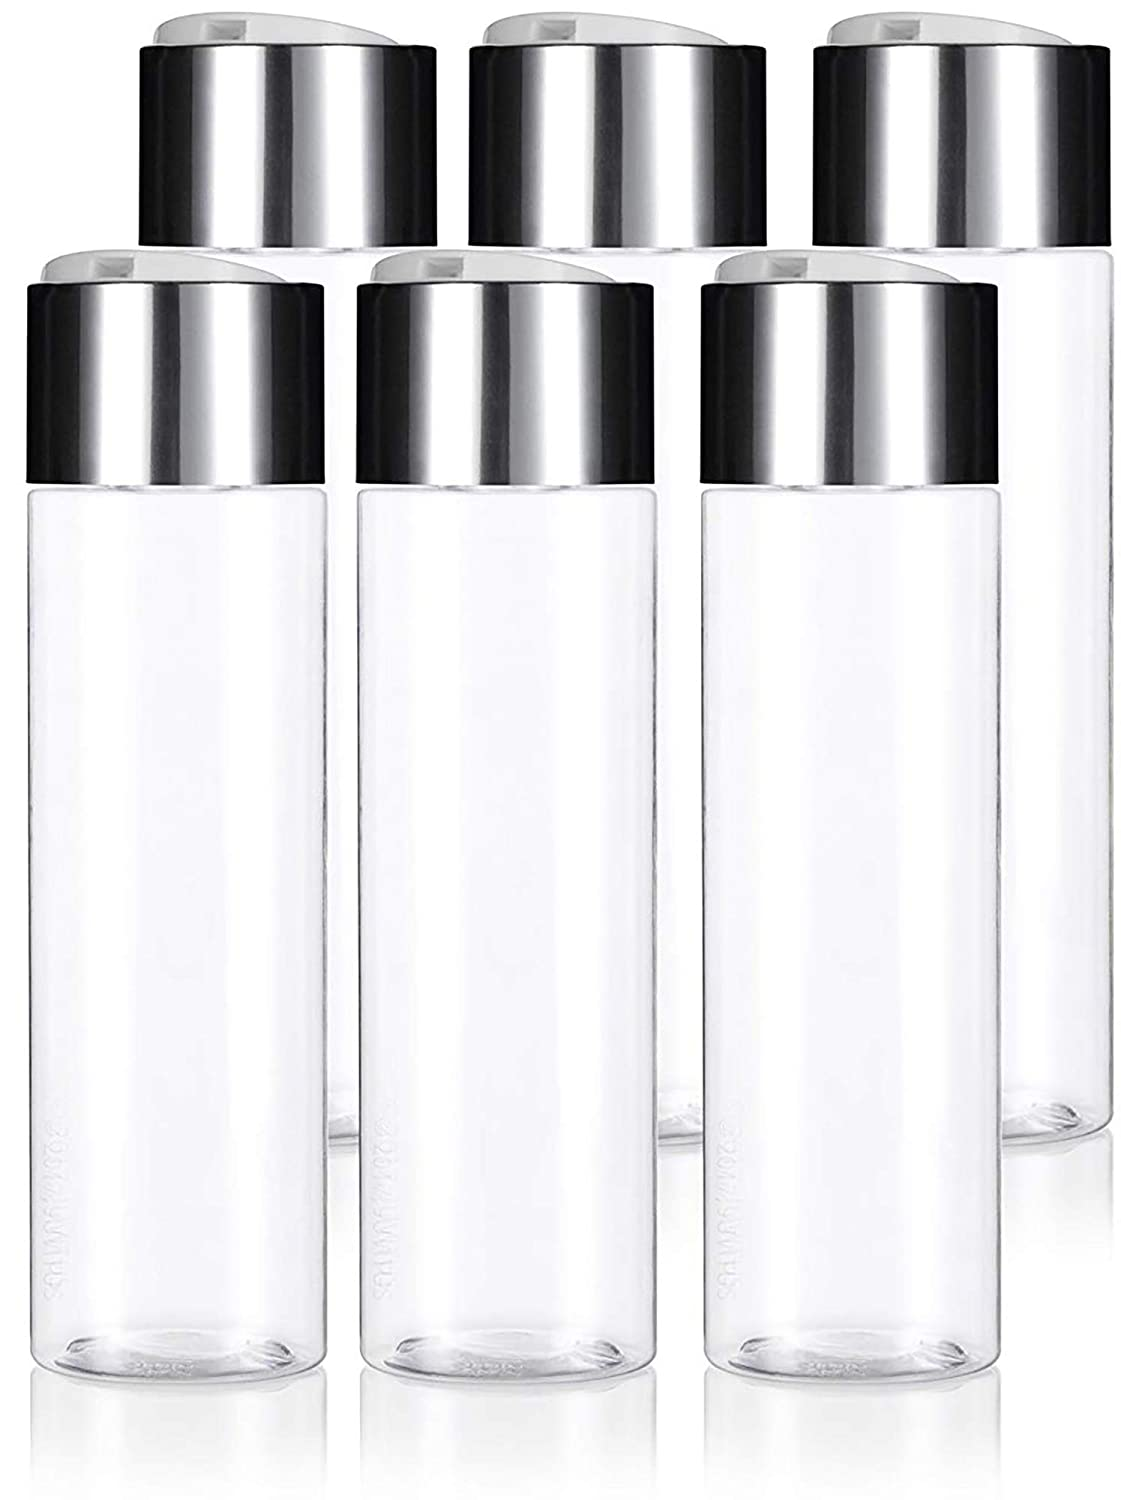 Clear 8 oz 250 ml Professional Cylinder Plastic PET Bottles BPA Free with Wide Silver Disc Cap Lid 6 Pack for Shampoo, Conditioner, Body Wash, Lotion, and More